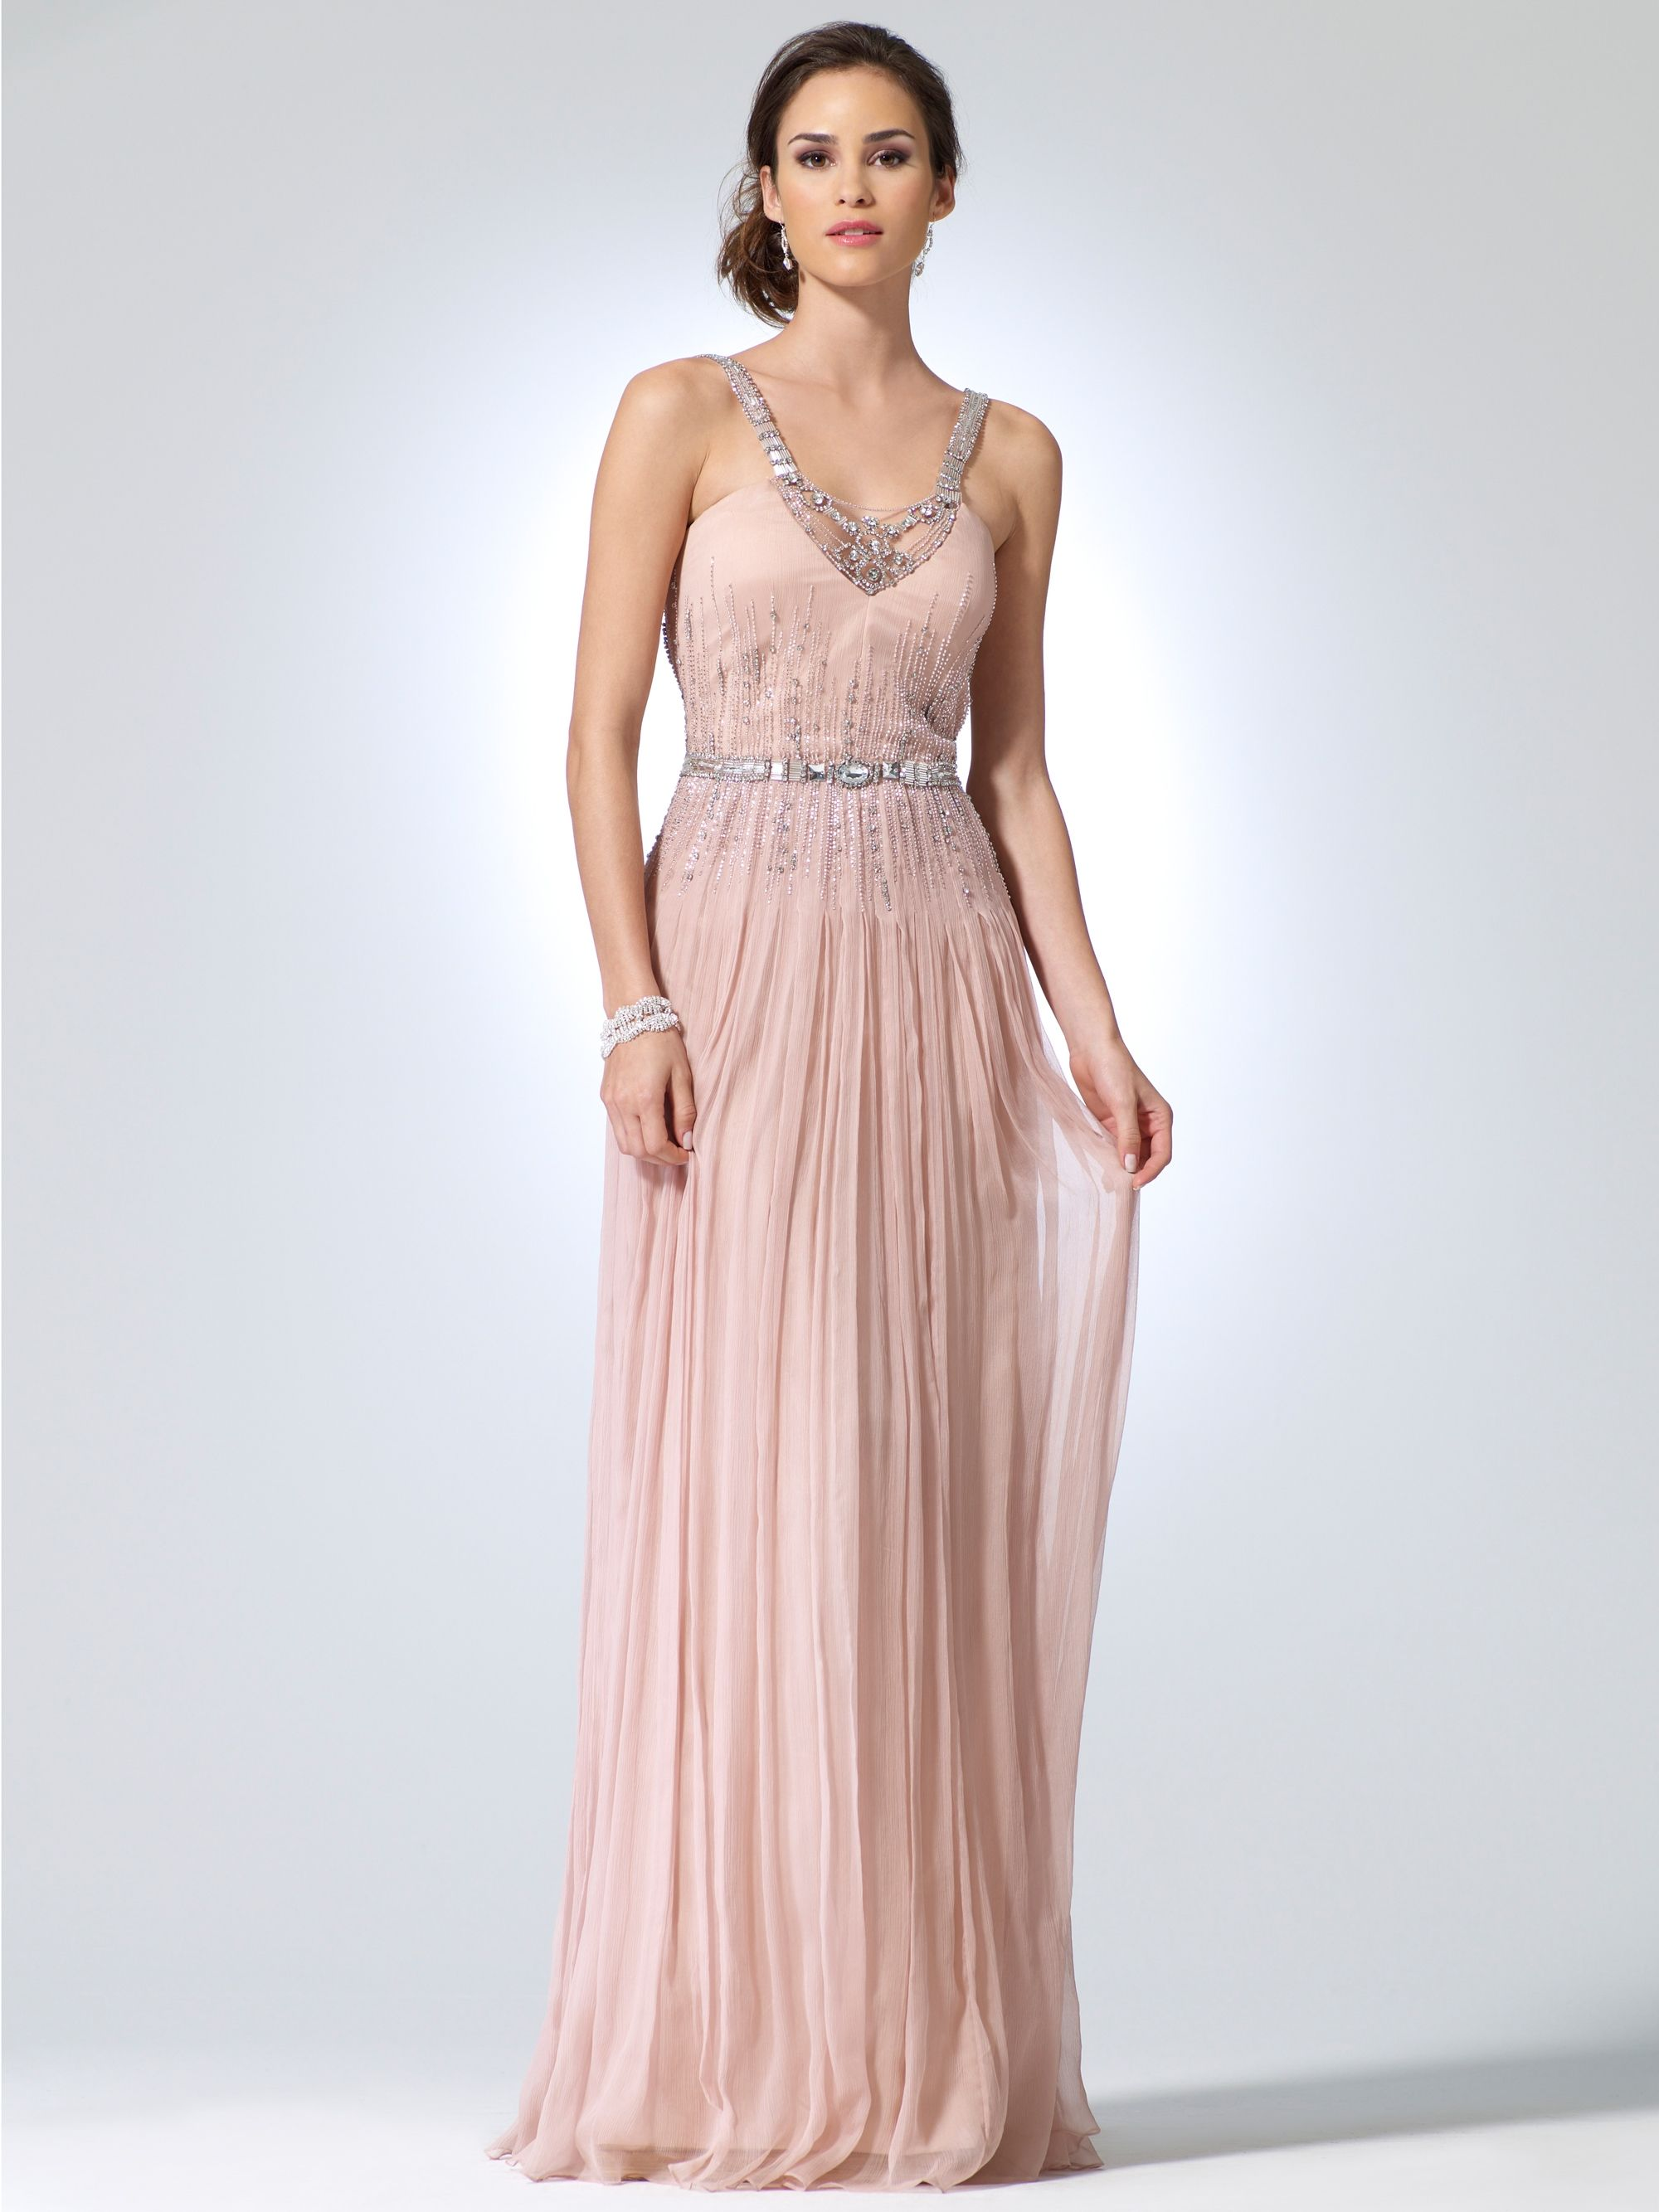 Not usually a Vintage girl - but this dress is absolutely stunning ...